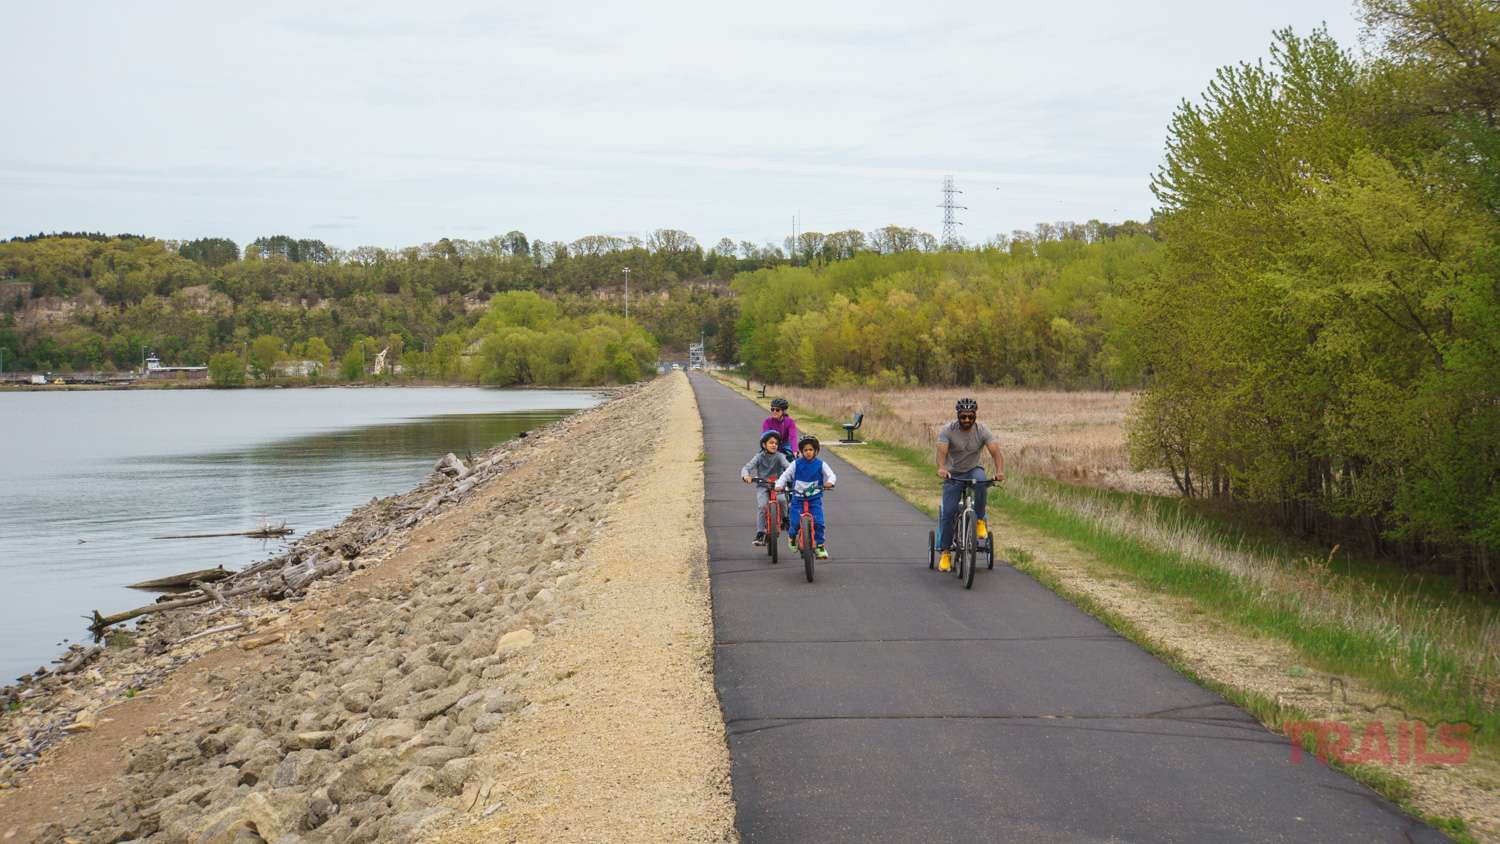 A family of four crosses Hastings' river dike trail on bicycles